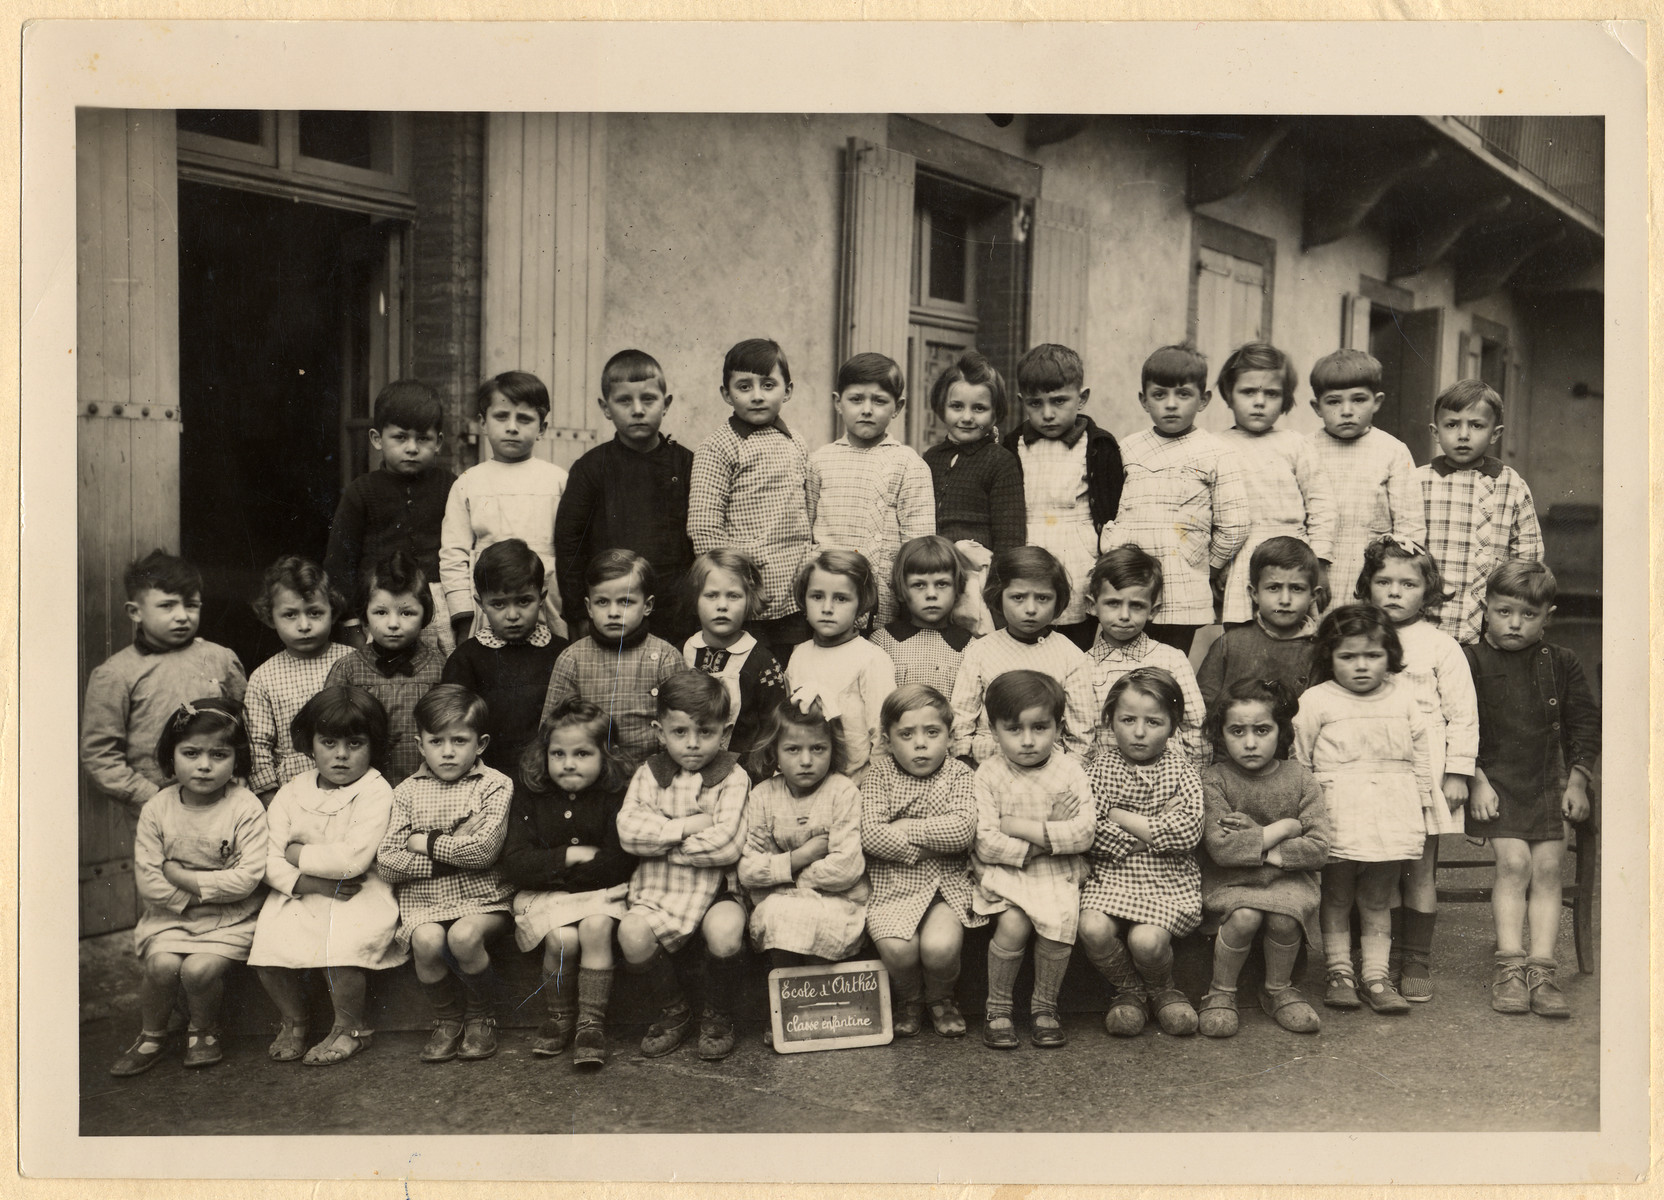 Class portrait of a kindergarten in Paris.  Among those pictured is Stephanie Bujakowski (second row, sixth from the left).  She was murdered a few years later in Auschwitz.